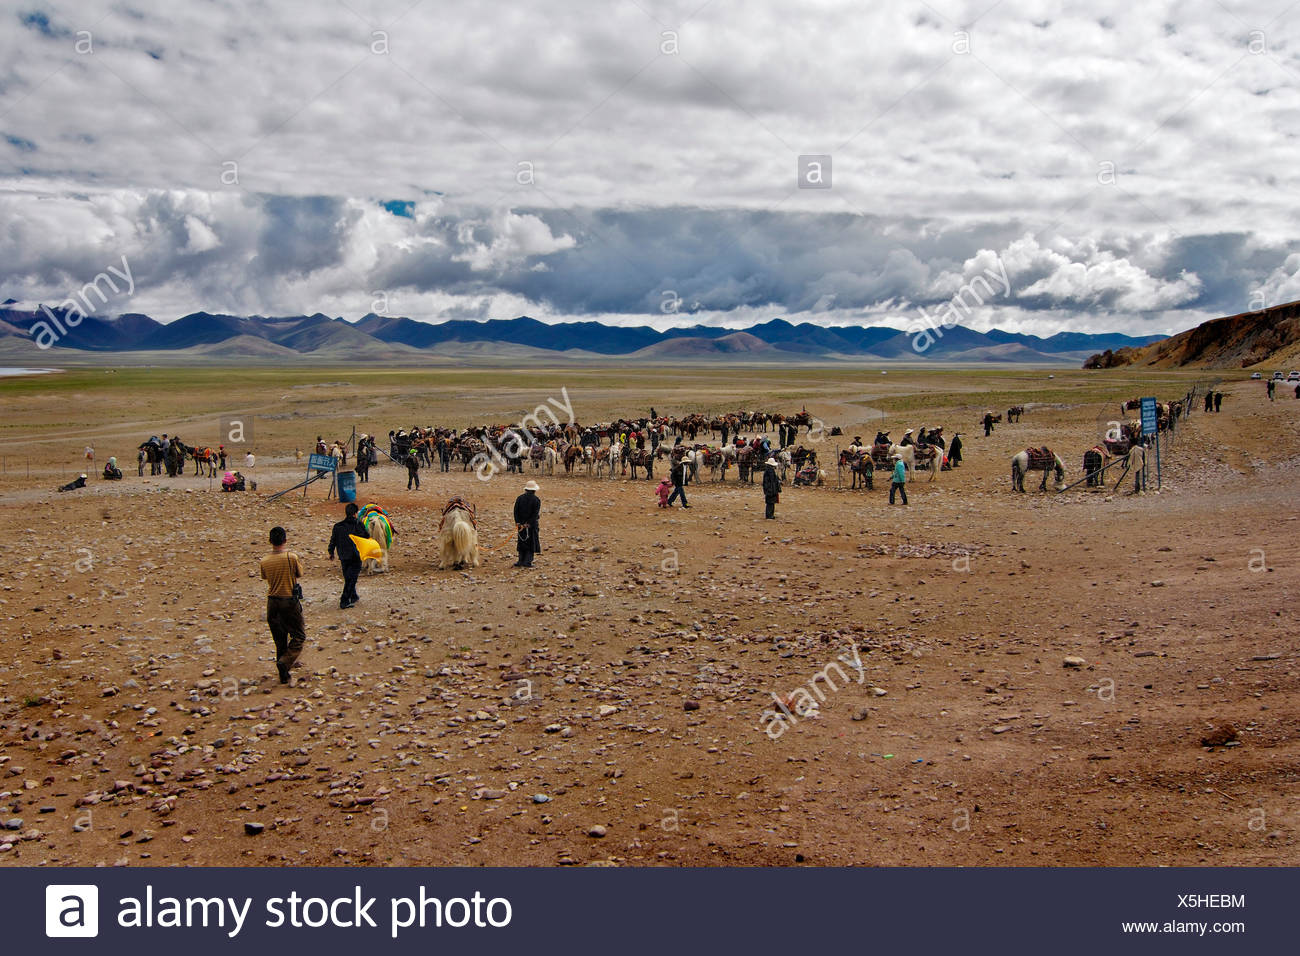 Tibetans with Yaks and horses waitingfor tourists, at the Namtsho lake, Tibet, Asia - Stock Image